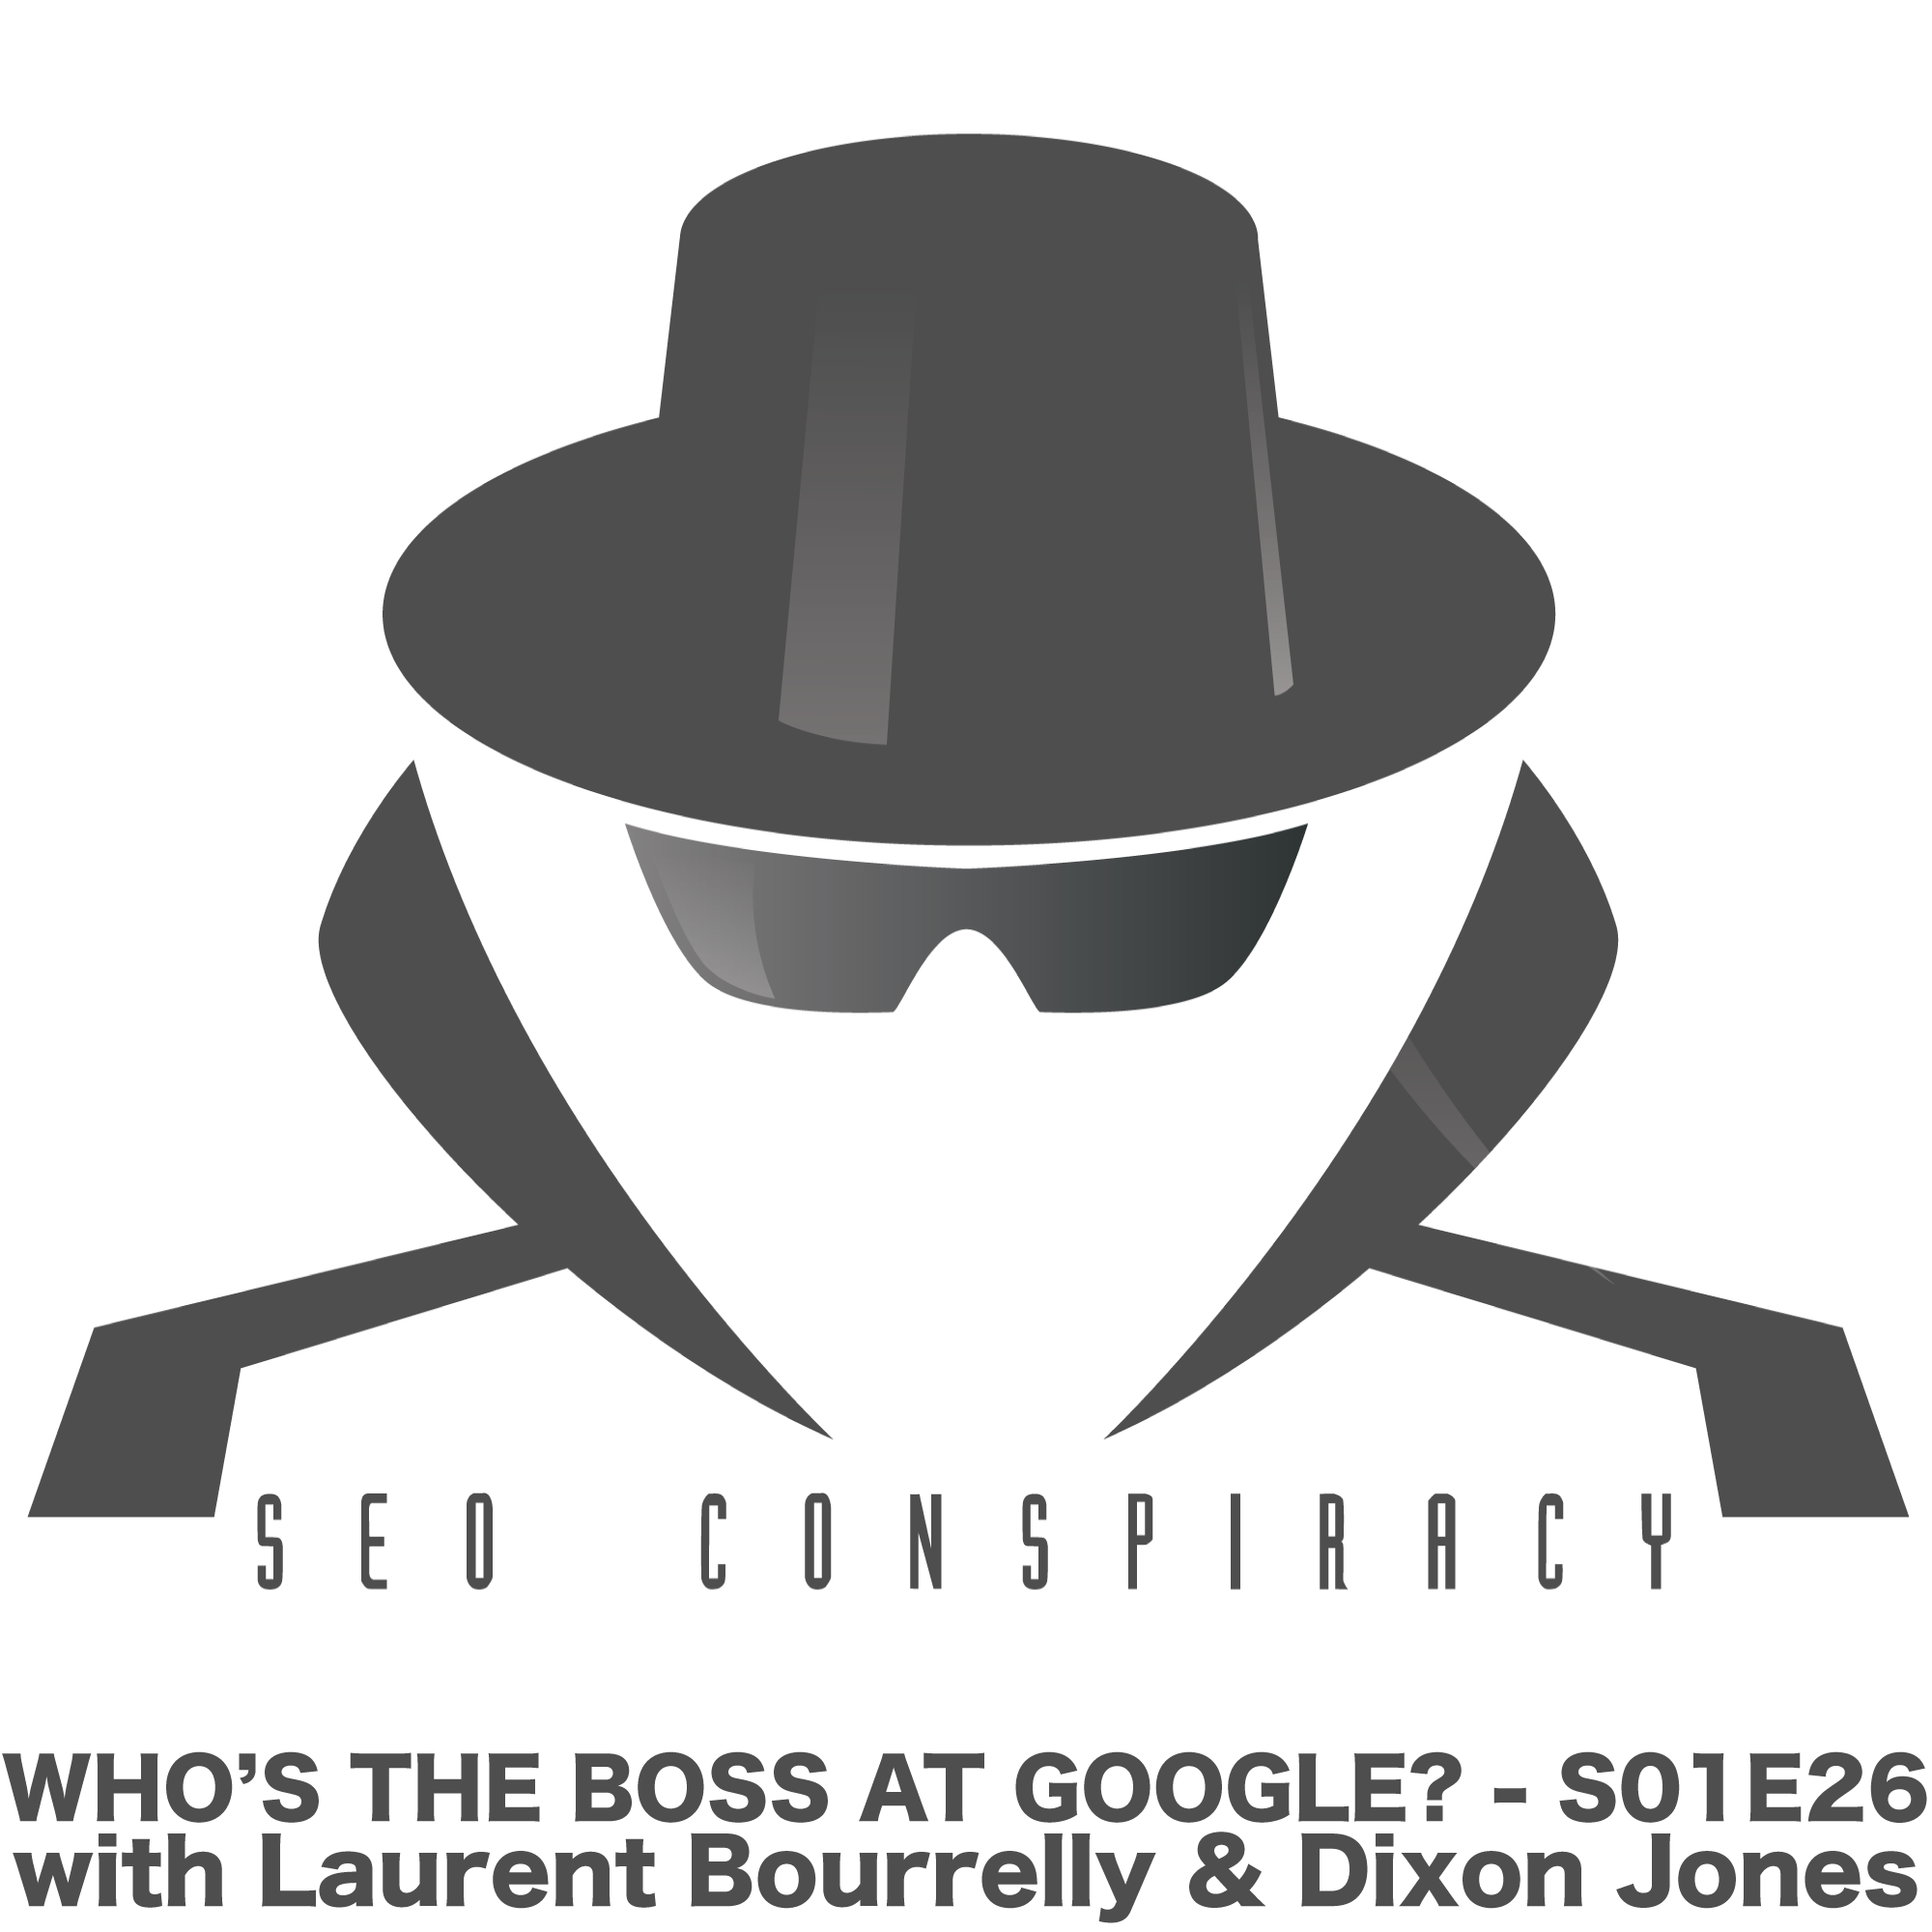 Who's in charge at Google? Who is the real Boss? - SEO Conspiracy S01E26